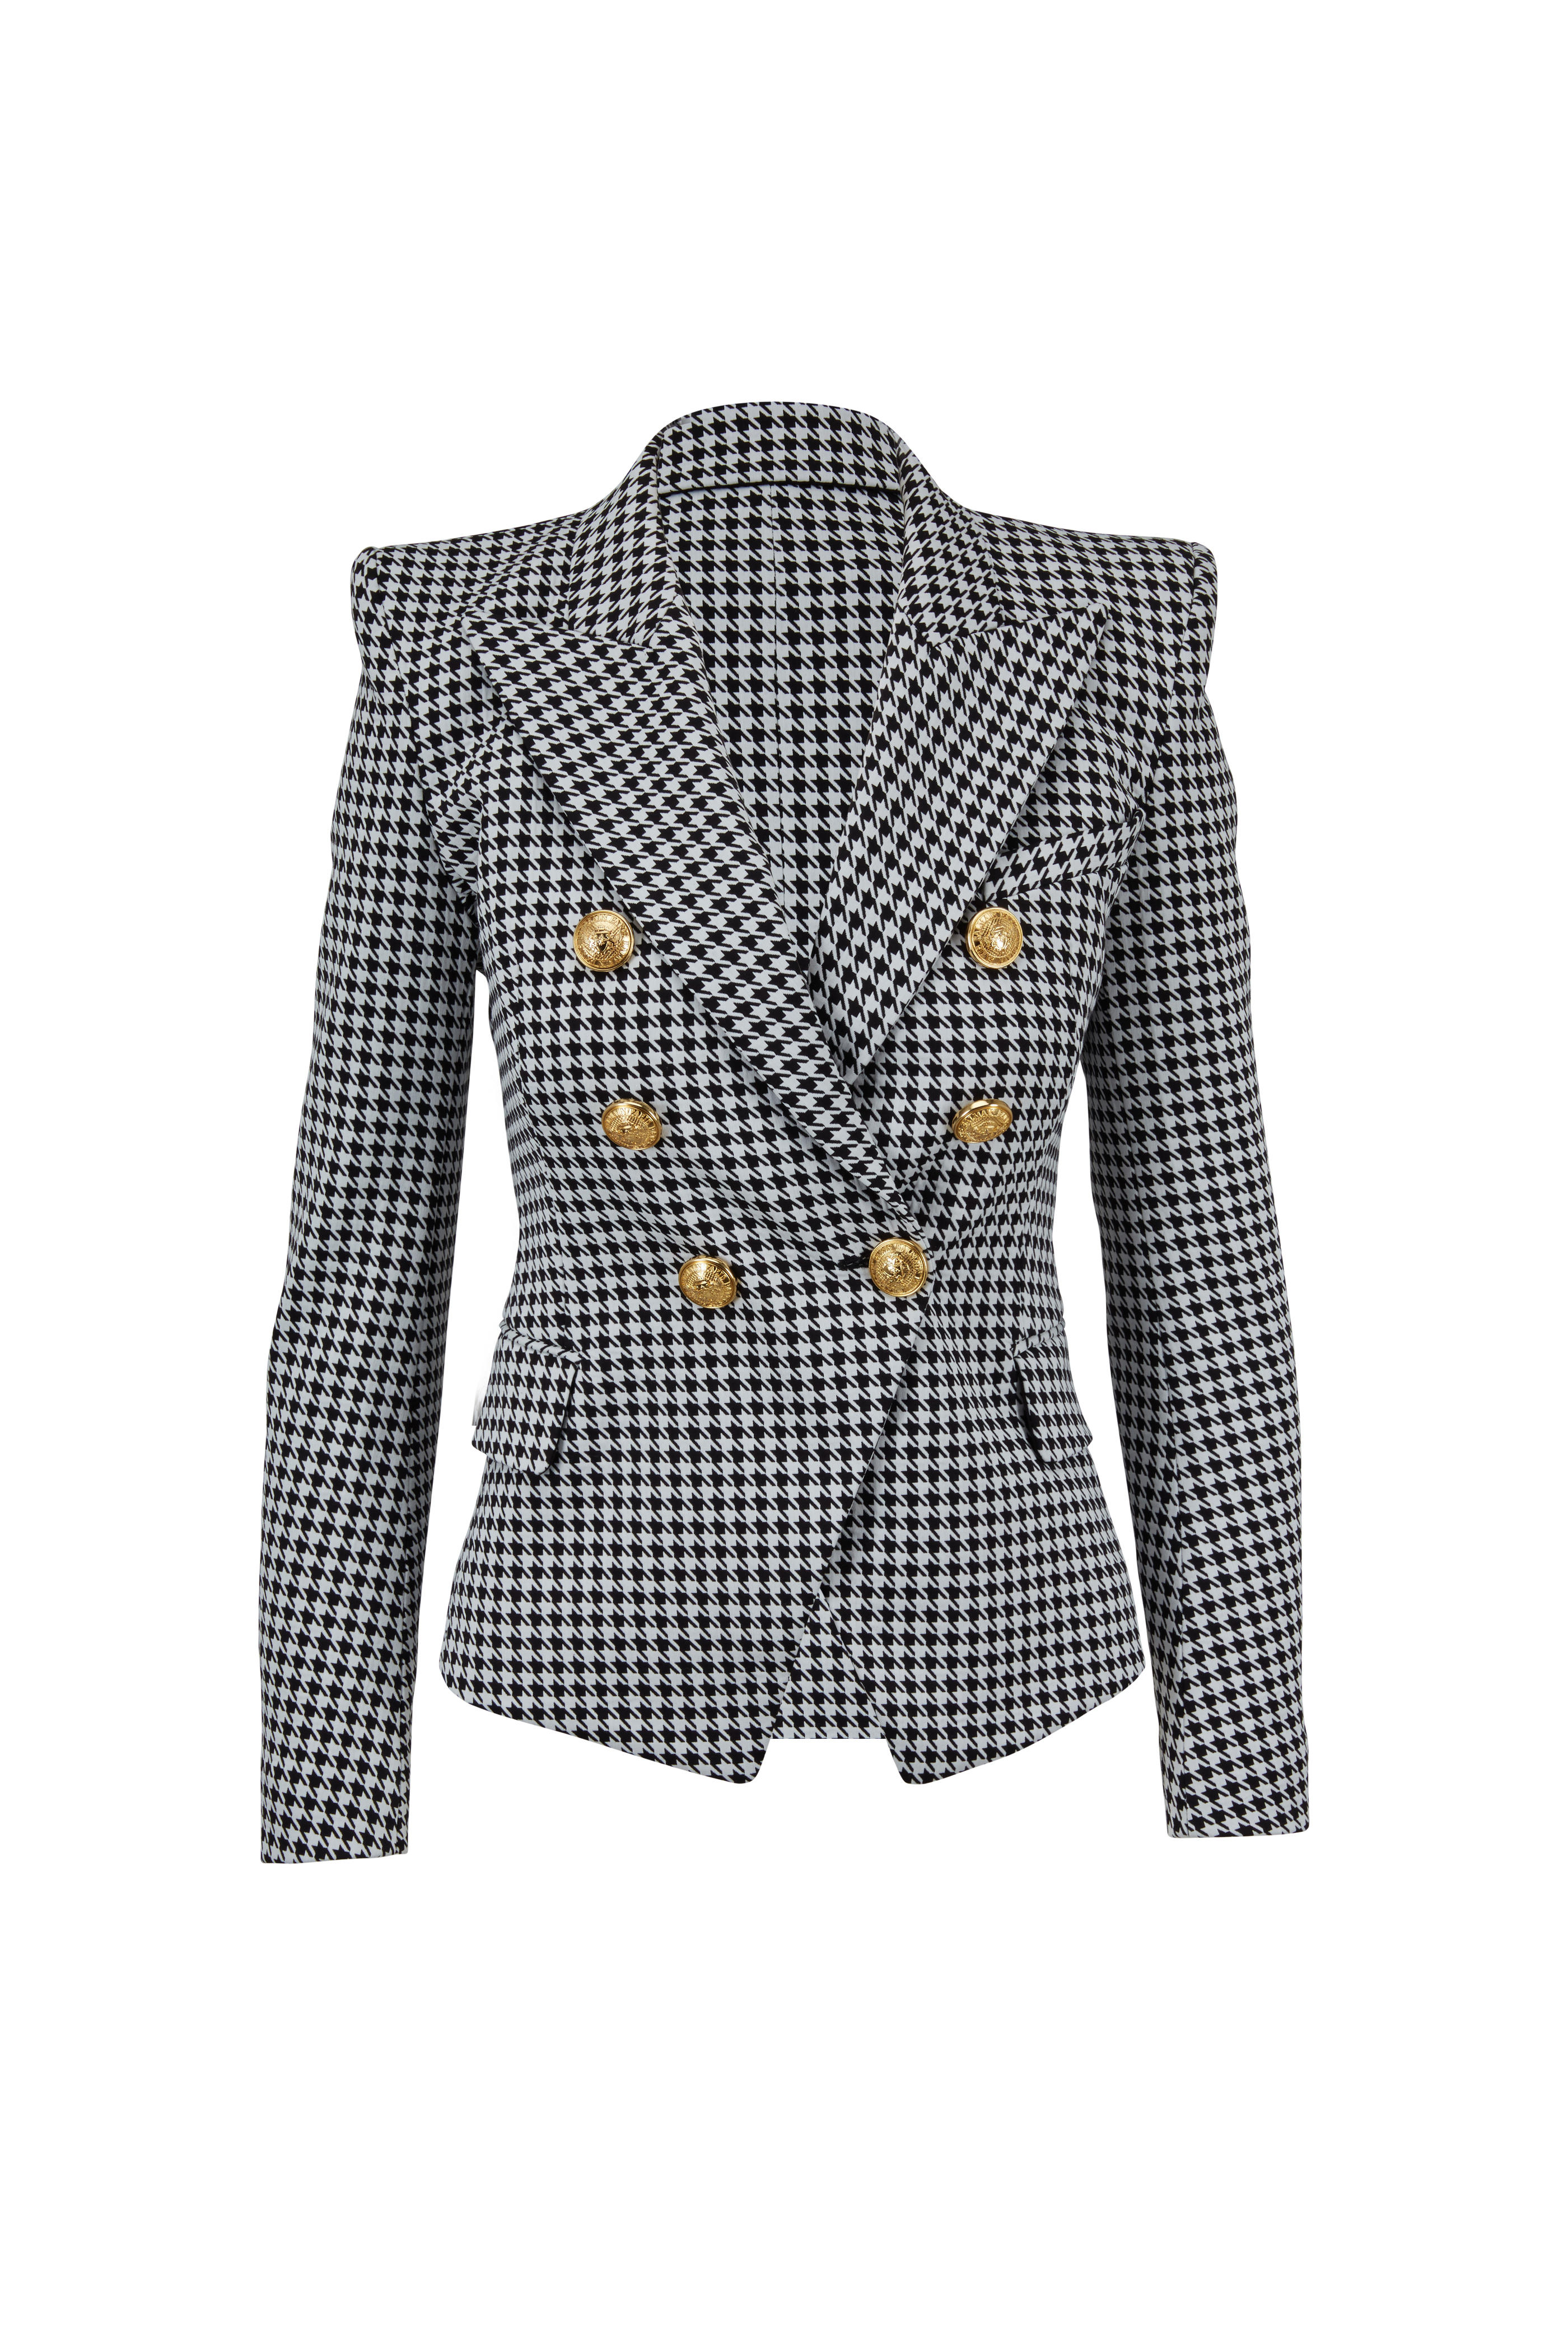 7af6e3dc Balmain - Black & White Houndstooth Double-Breasted Jacket ...